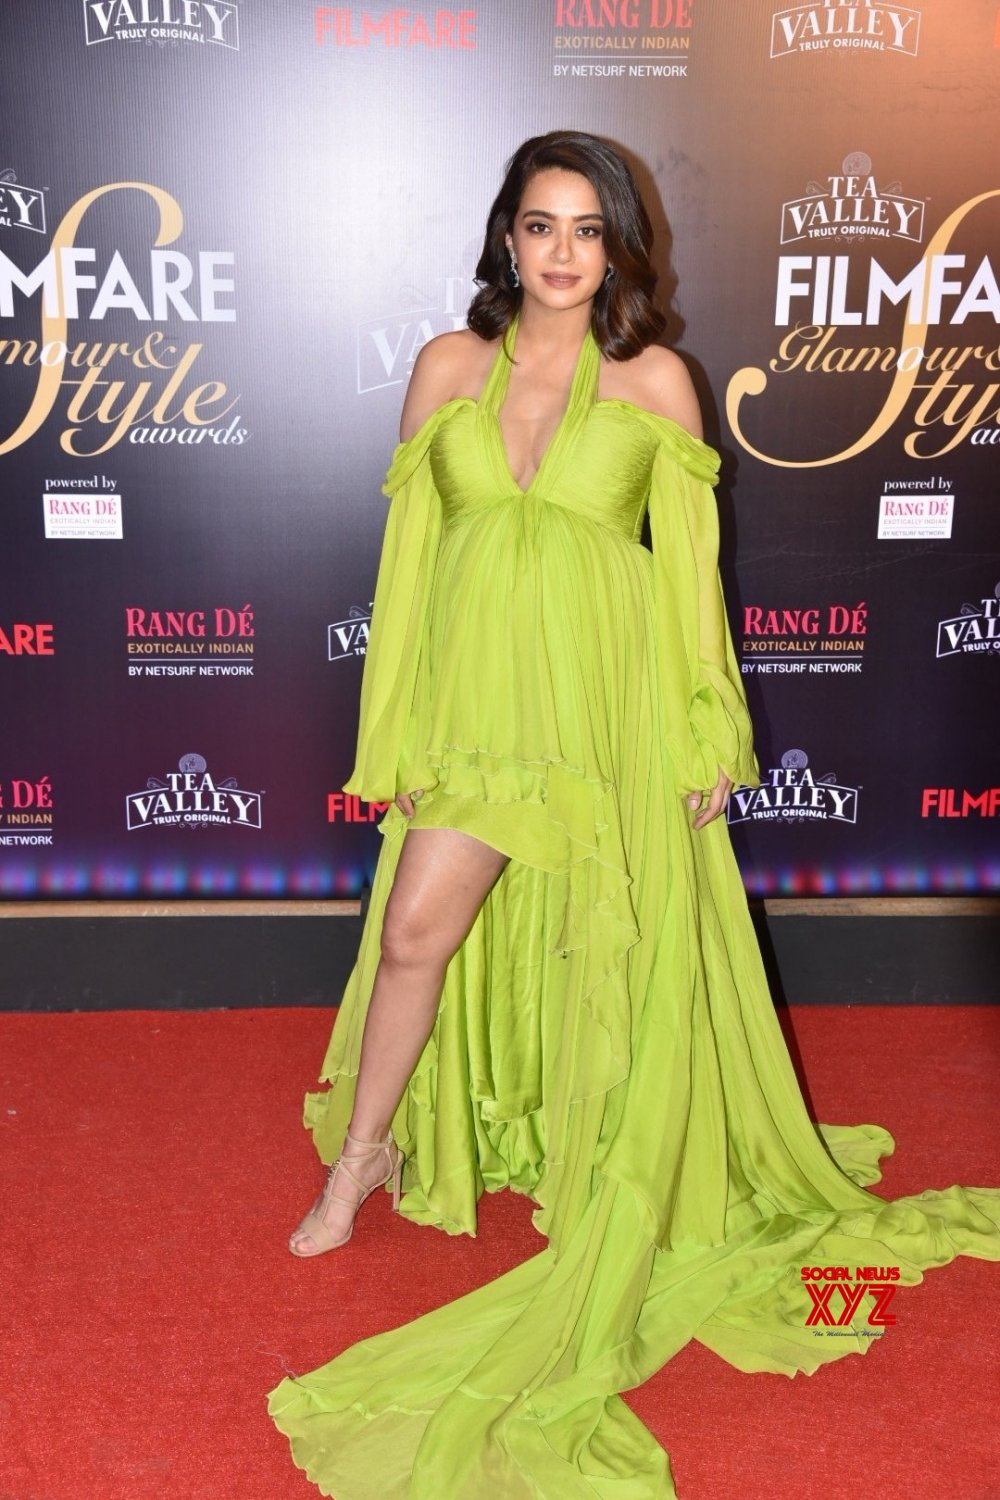 Mumbai: Filmfare Glamour And Style Awards 2019 - Akshara, Rekha, Shilpa and others #Gallery